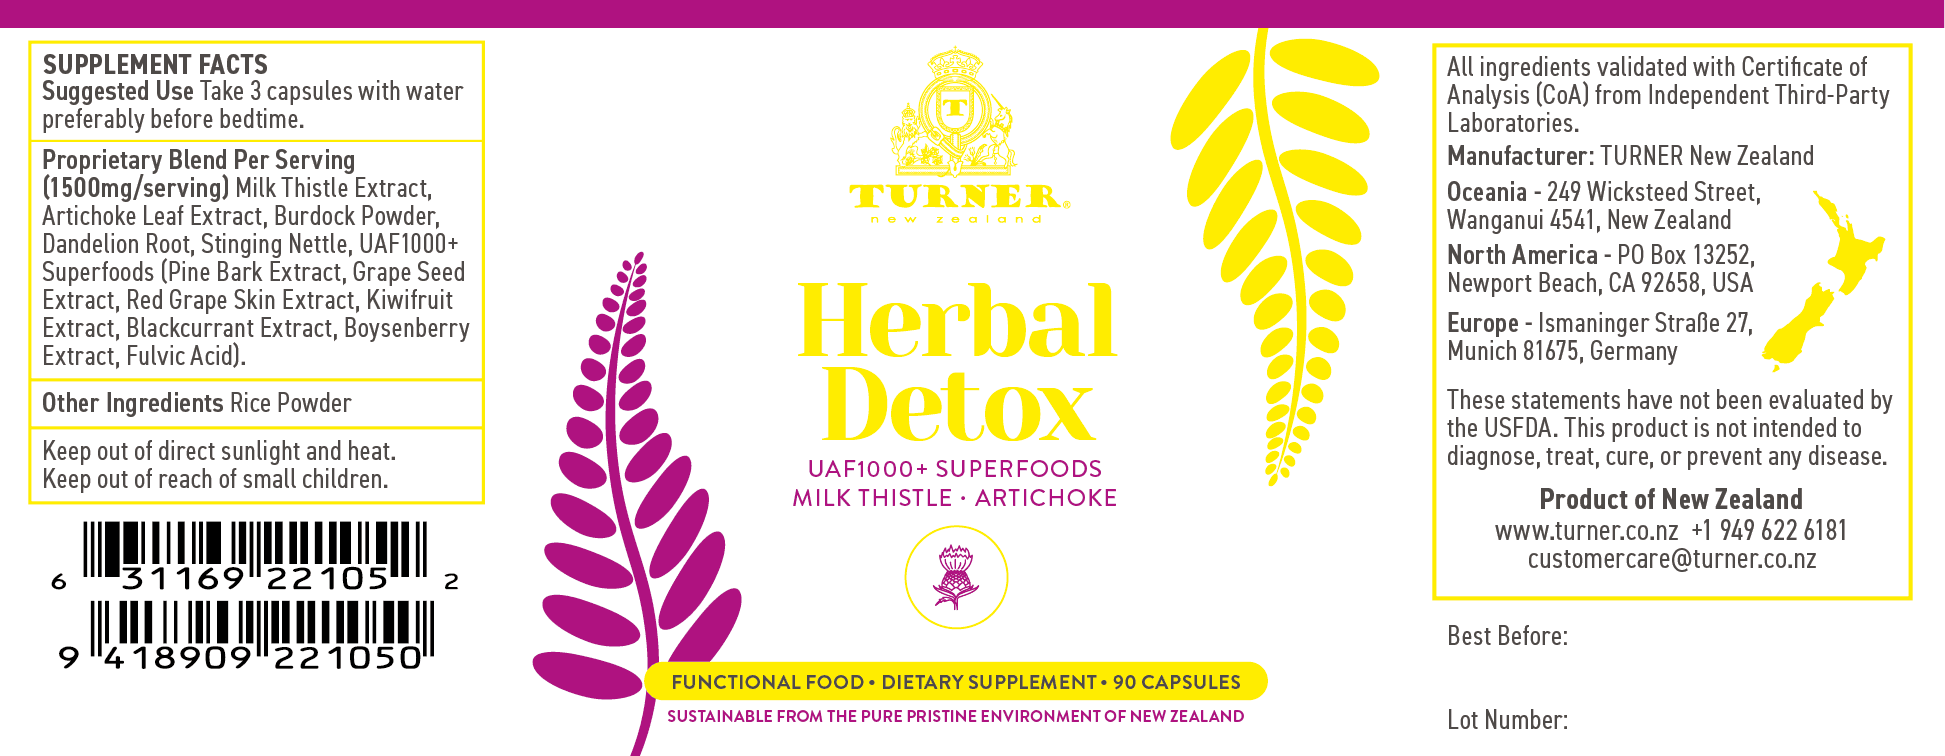 Herbal Detox - TURNER New Zealand